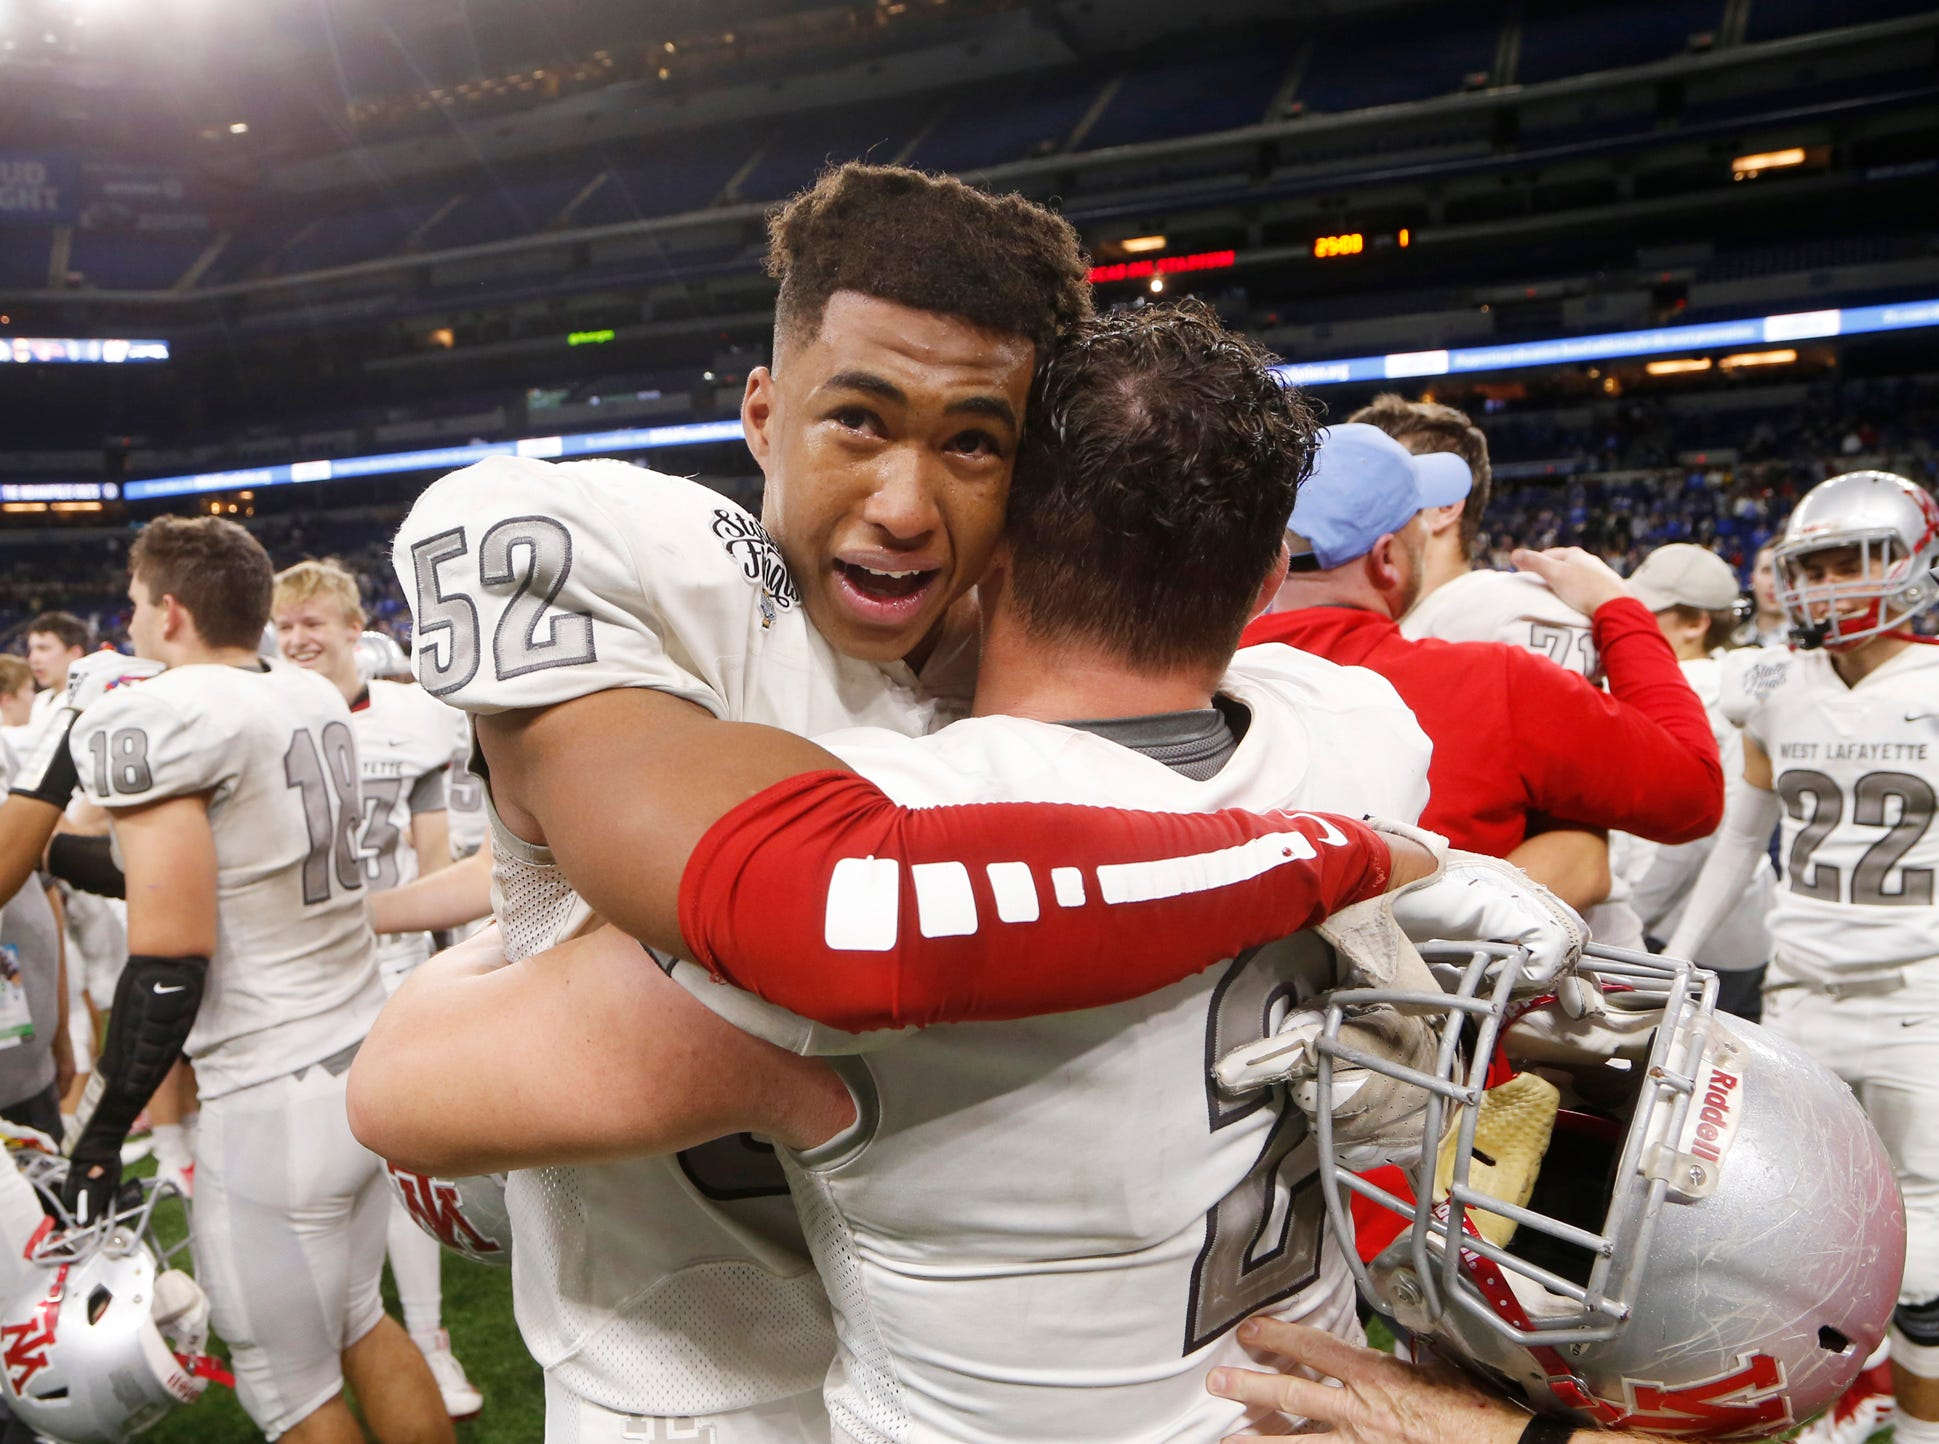 Tavion Woodard of West Lafayette celebrates with teammate Joey Kidwell after the Red Devils defeated Evansville Memorial 47-42 in the Class 3A State Championship Saturday, November 24, 2018, at Lucas Oil Stadium in Indianapolis.